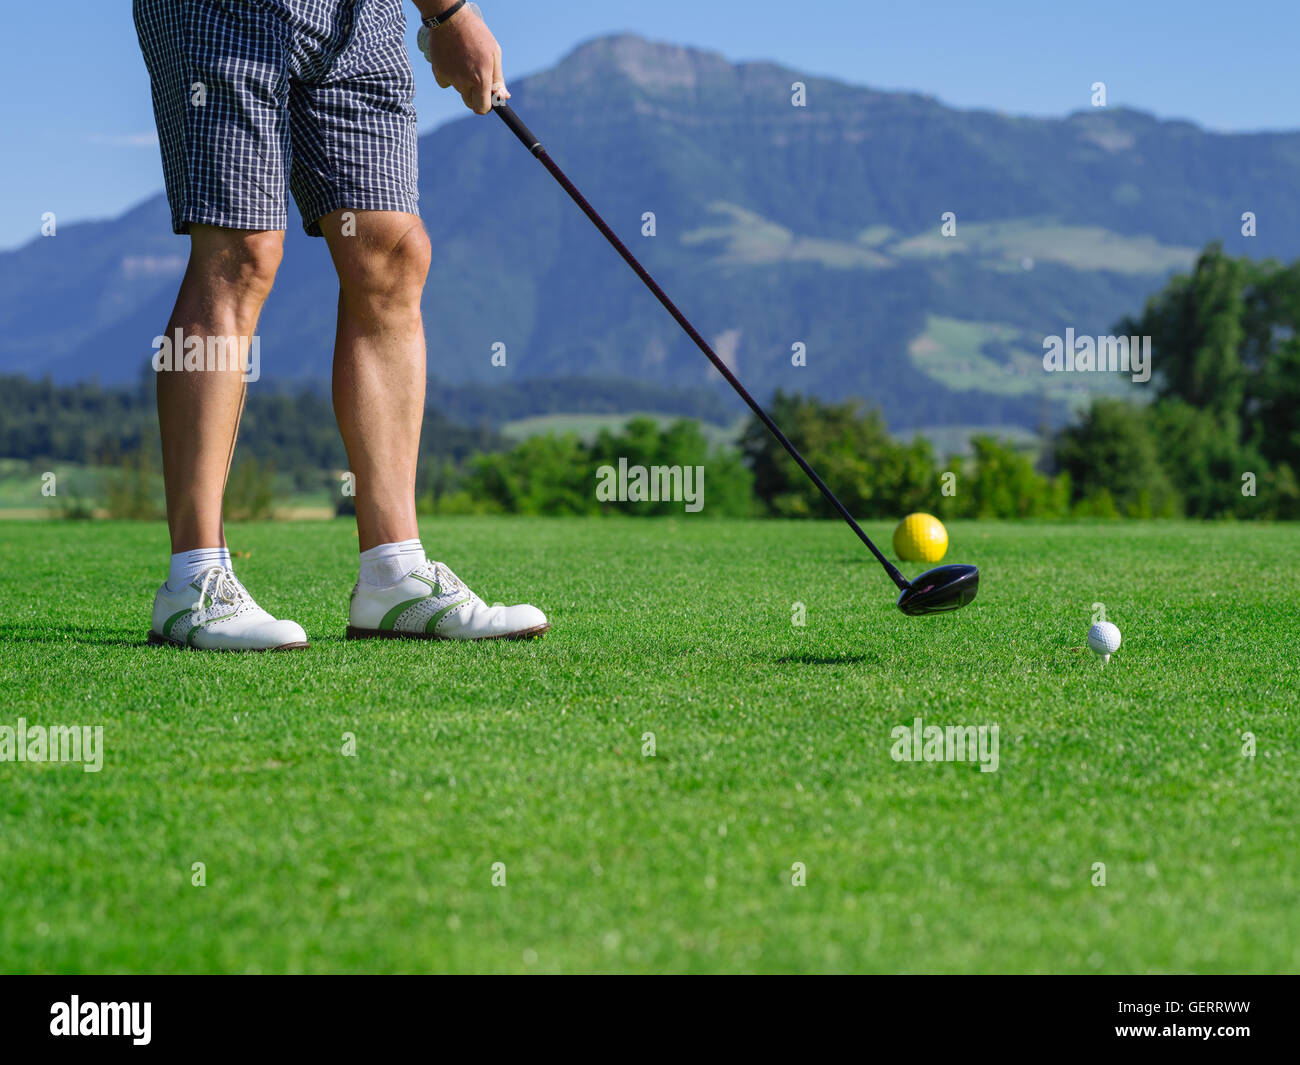 Photo of a male golfer teeing off on a golf course on a beautiful day. - Stock Image